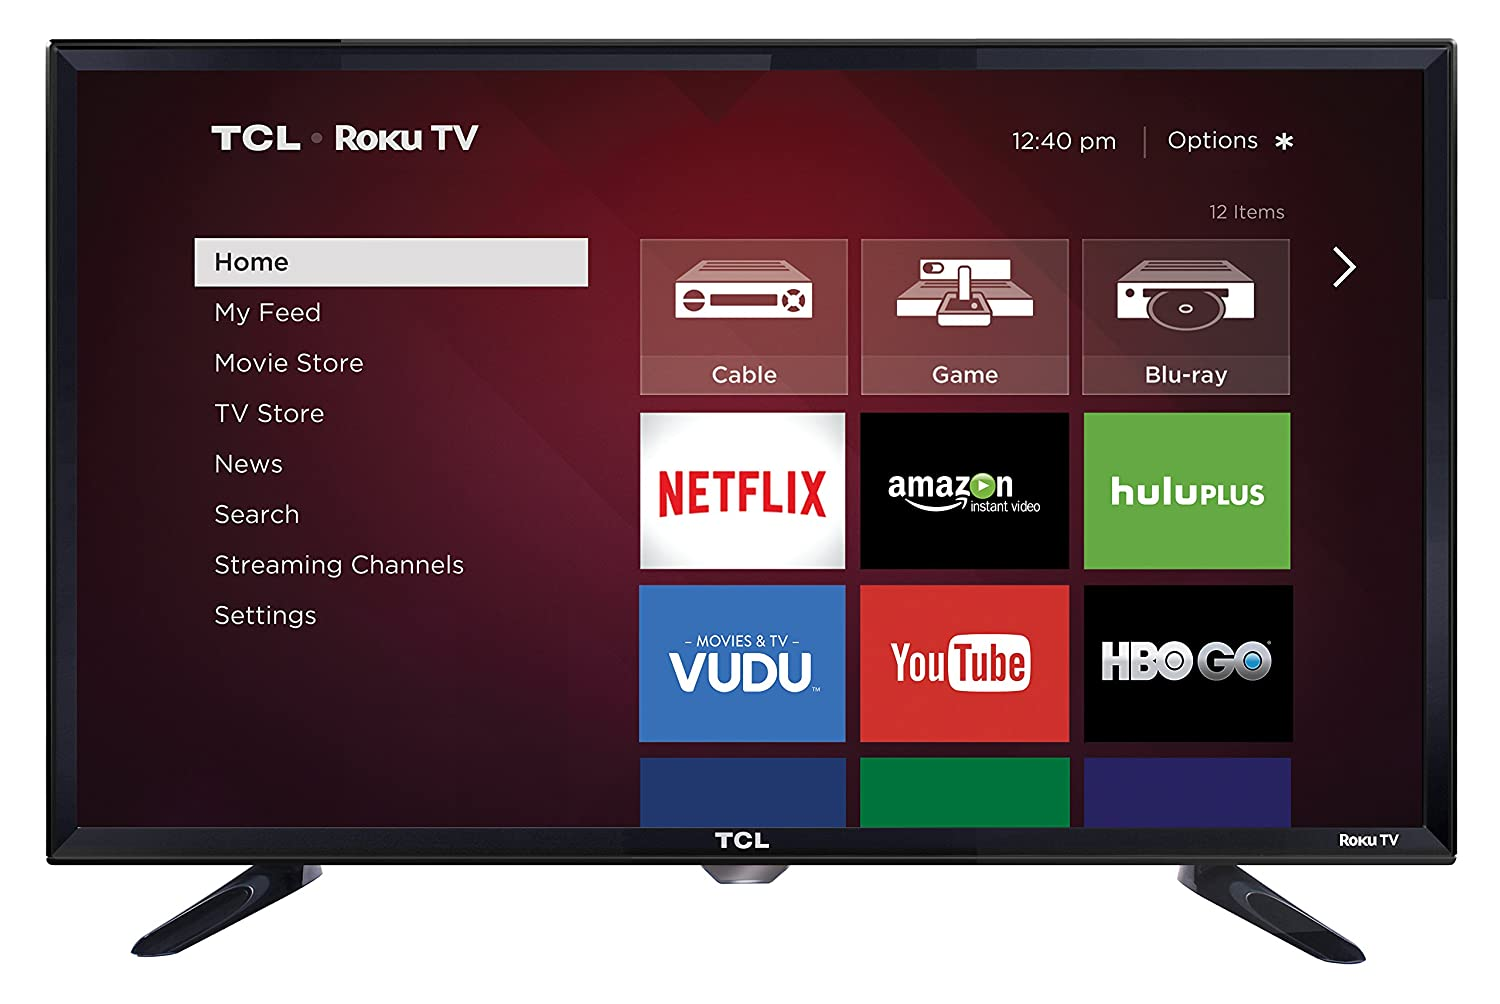 TCL 28S3750 28 Inch 720p 60Hz Roku Smart LED TV (2015 Model)